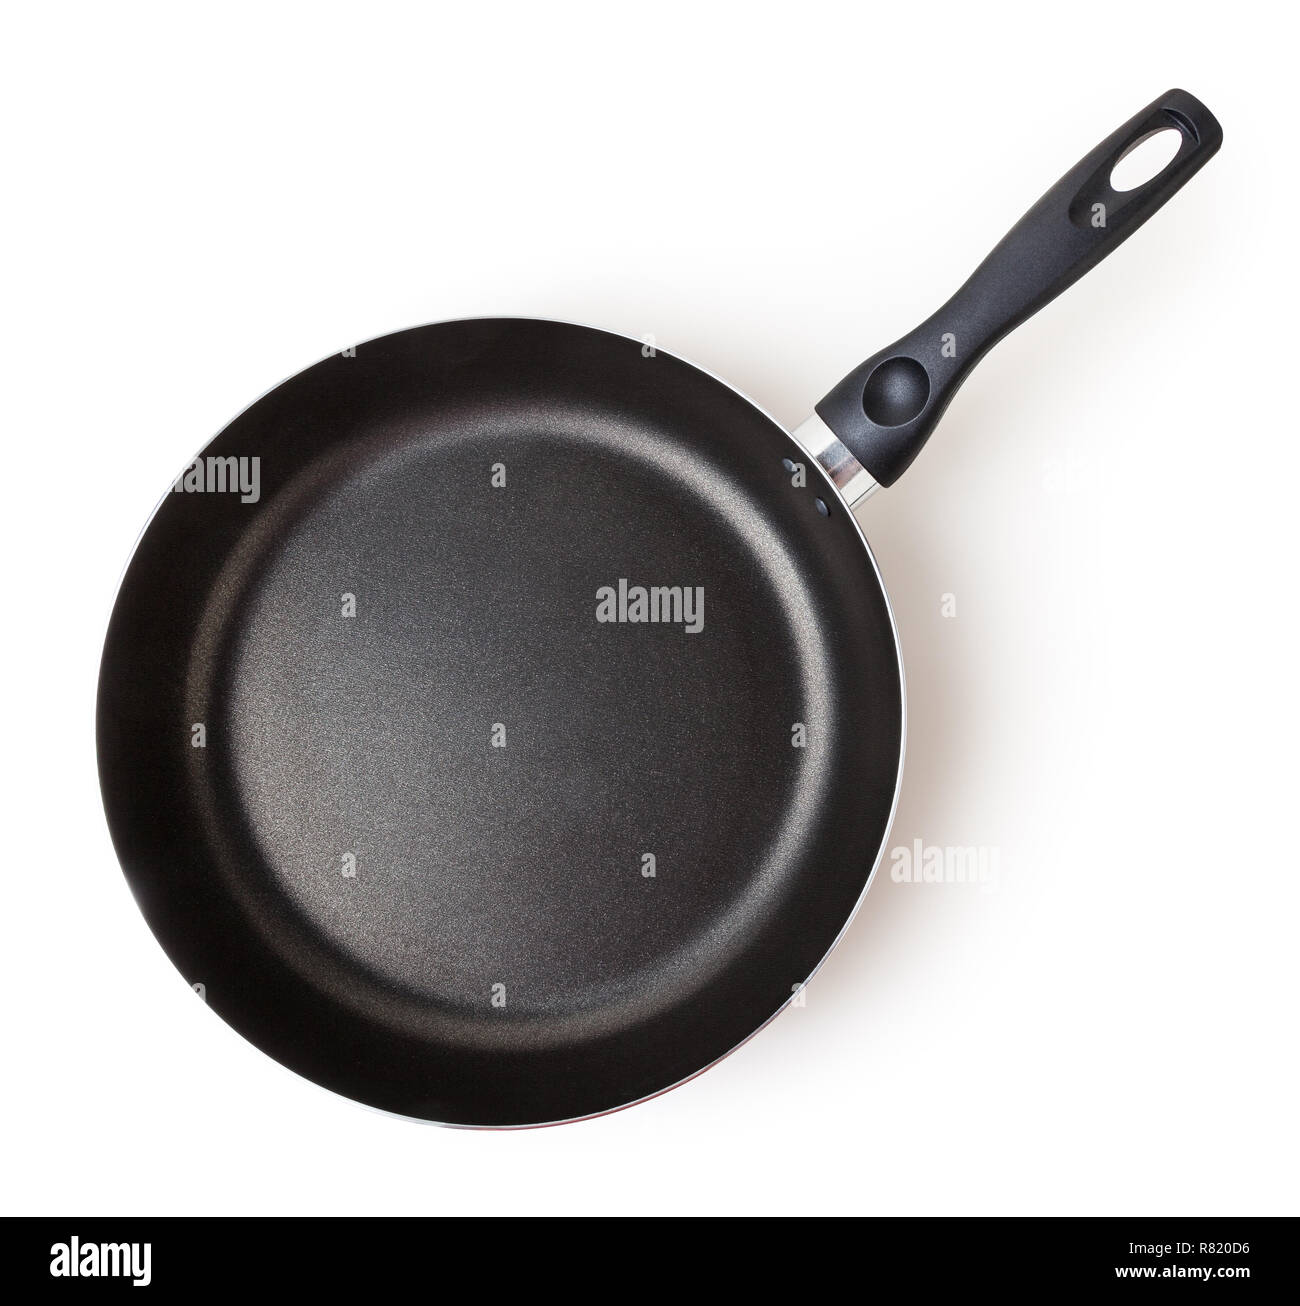 Frying pan isolated on white background with clipping path - Stock Image